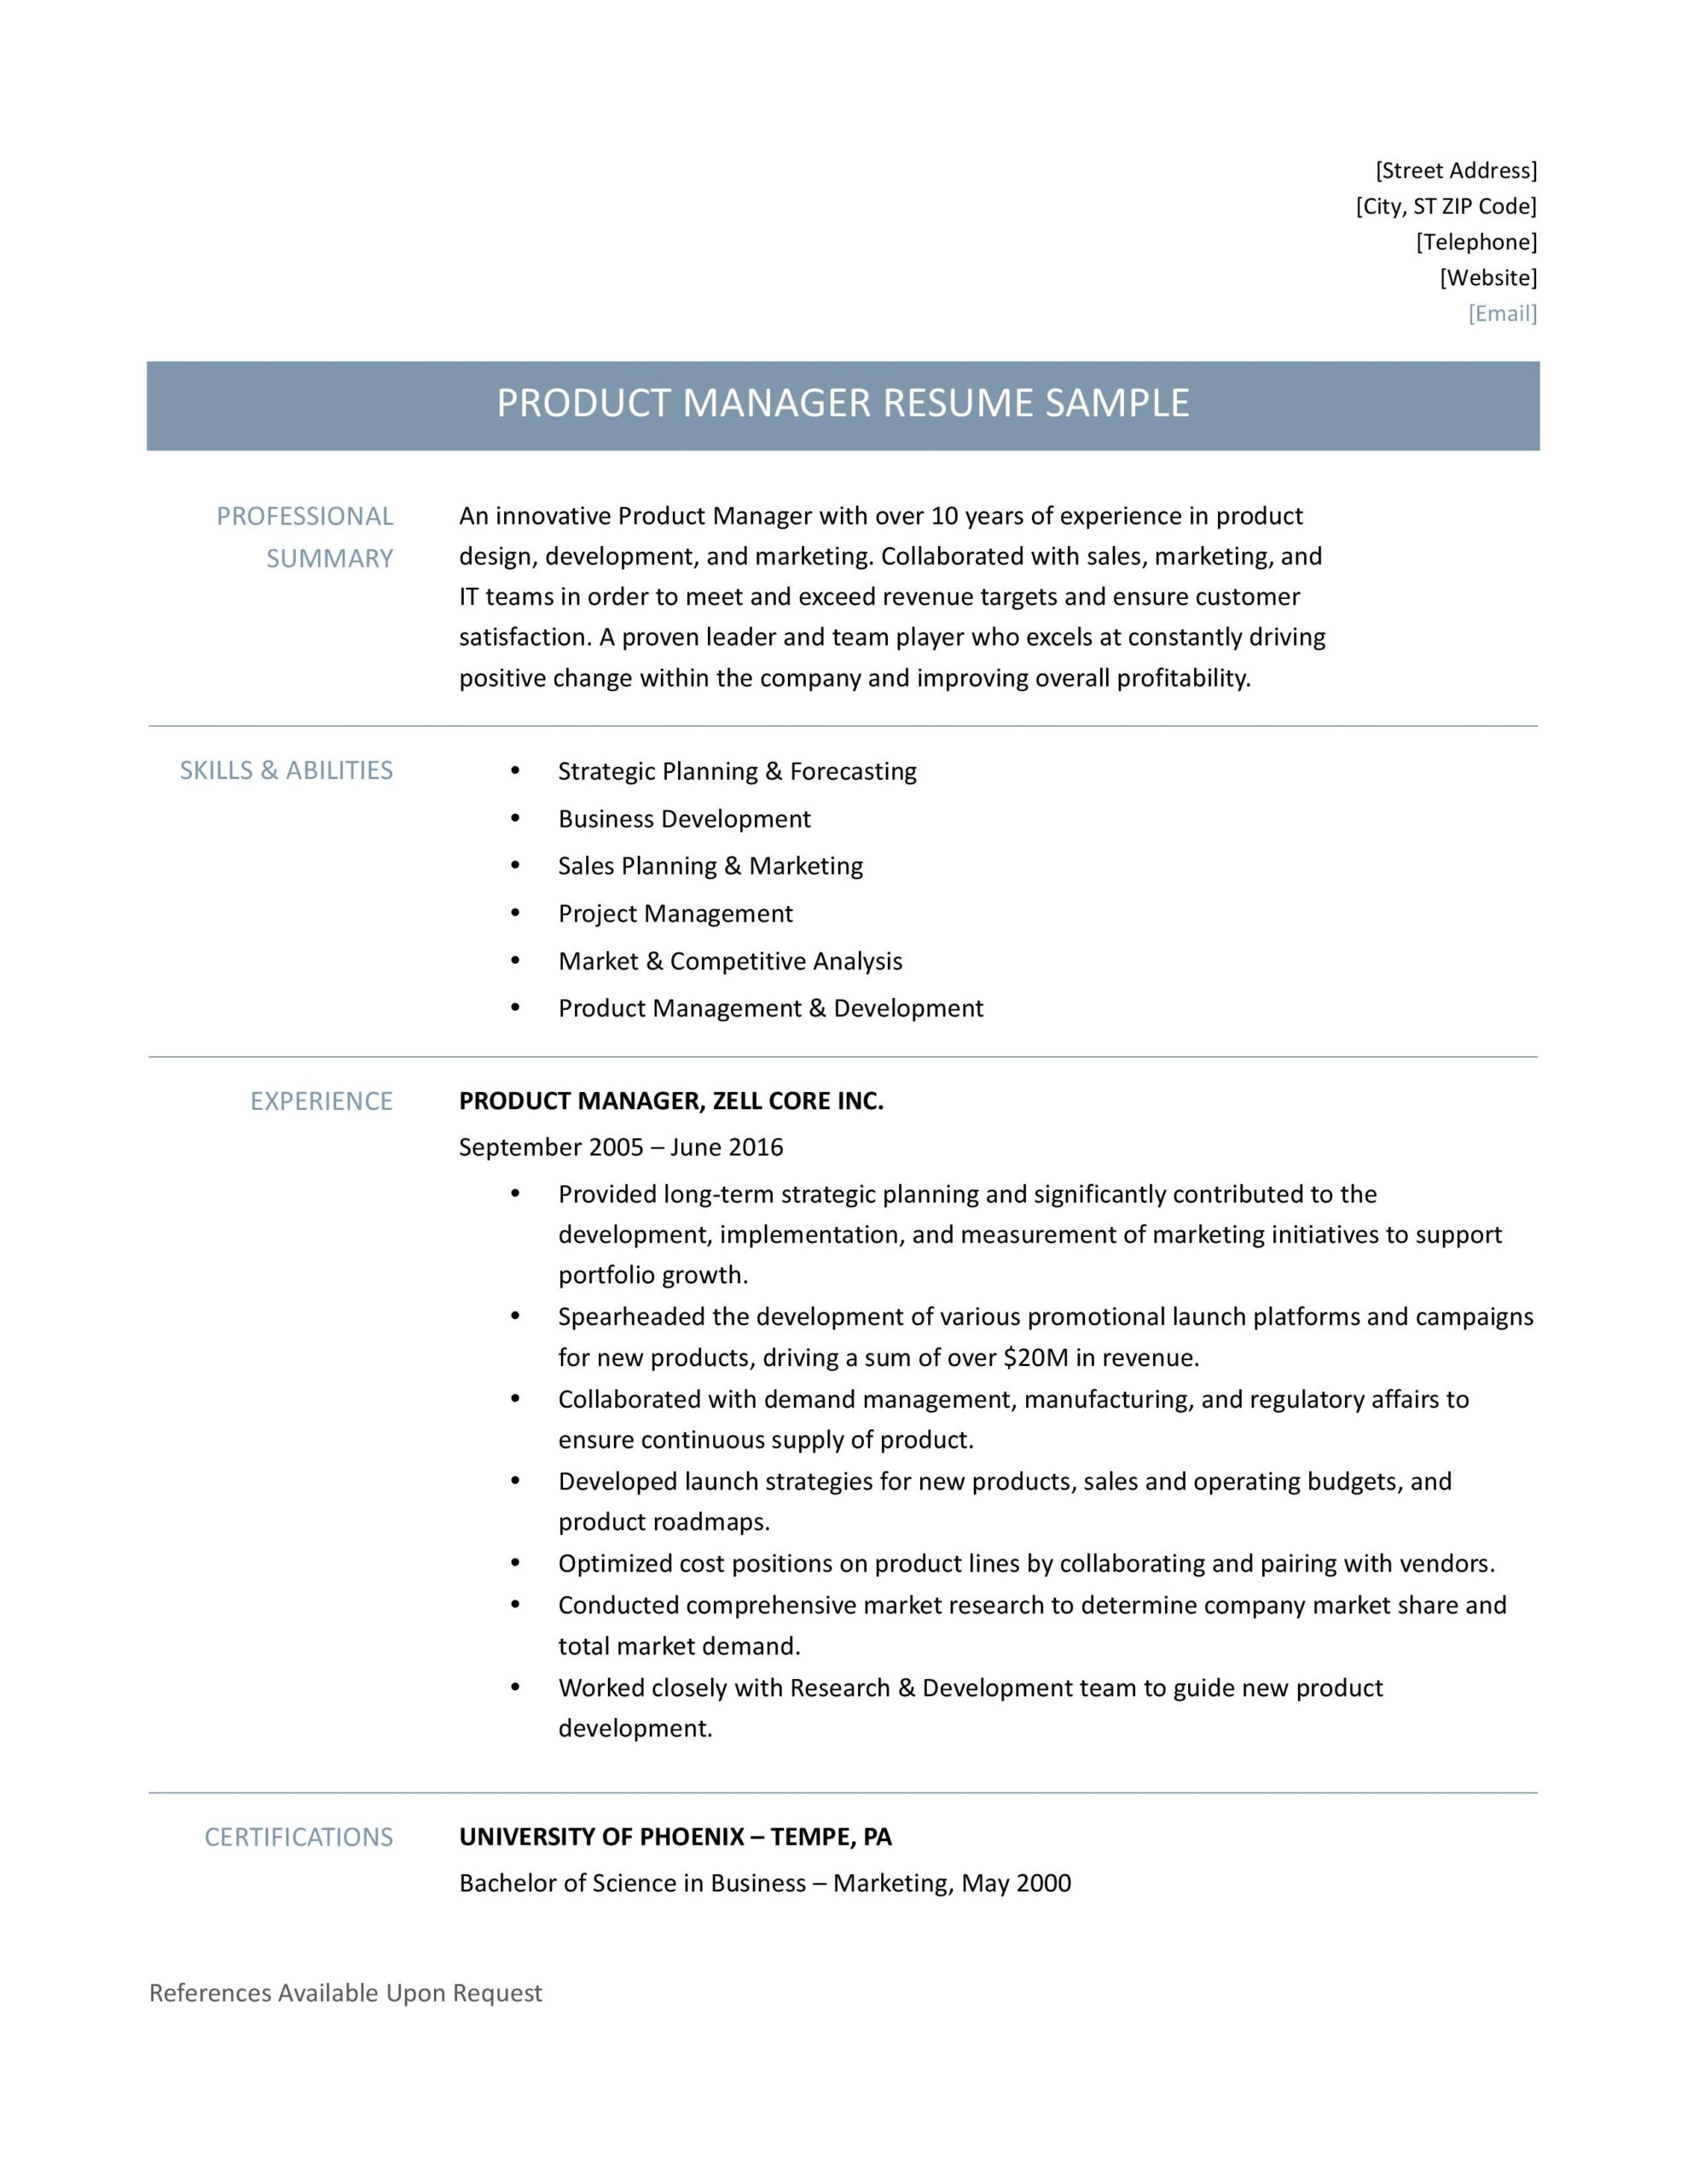 product manager resume samples template and job description by builders medium sample Resume Product Manager Resume Sample